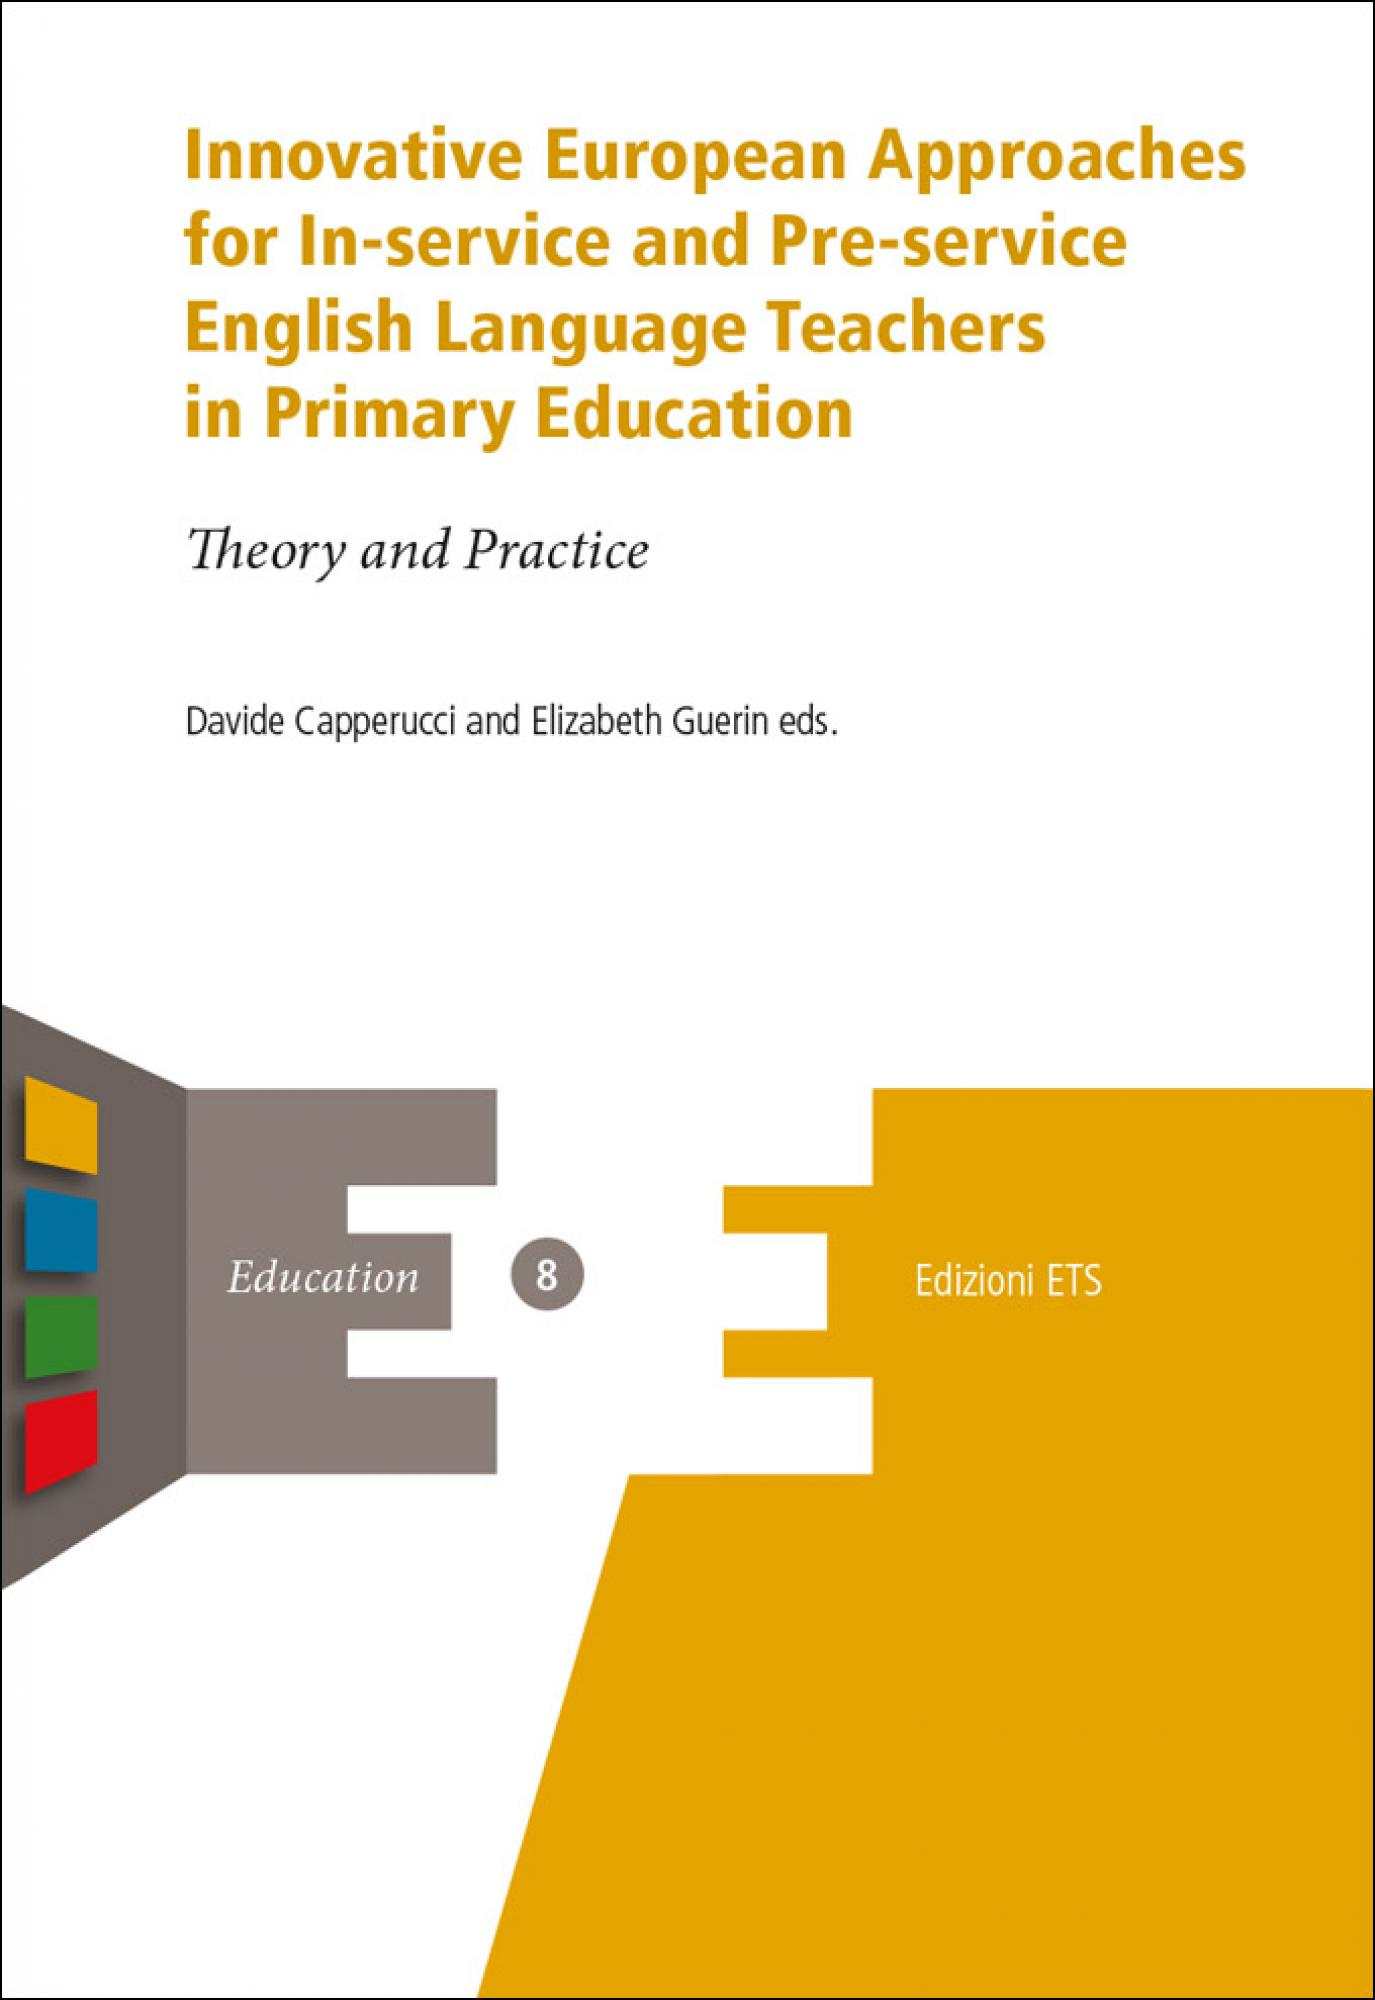 Innovative European Approaches for In-service and Pre-service English Language Teachers in Primary Education.